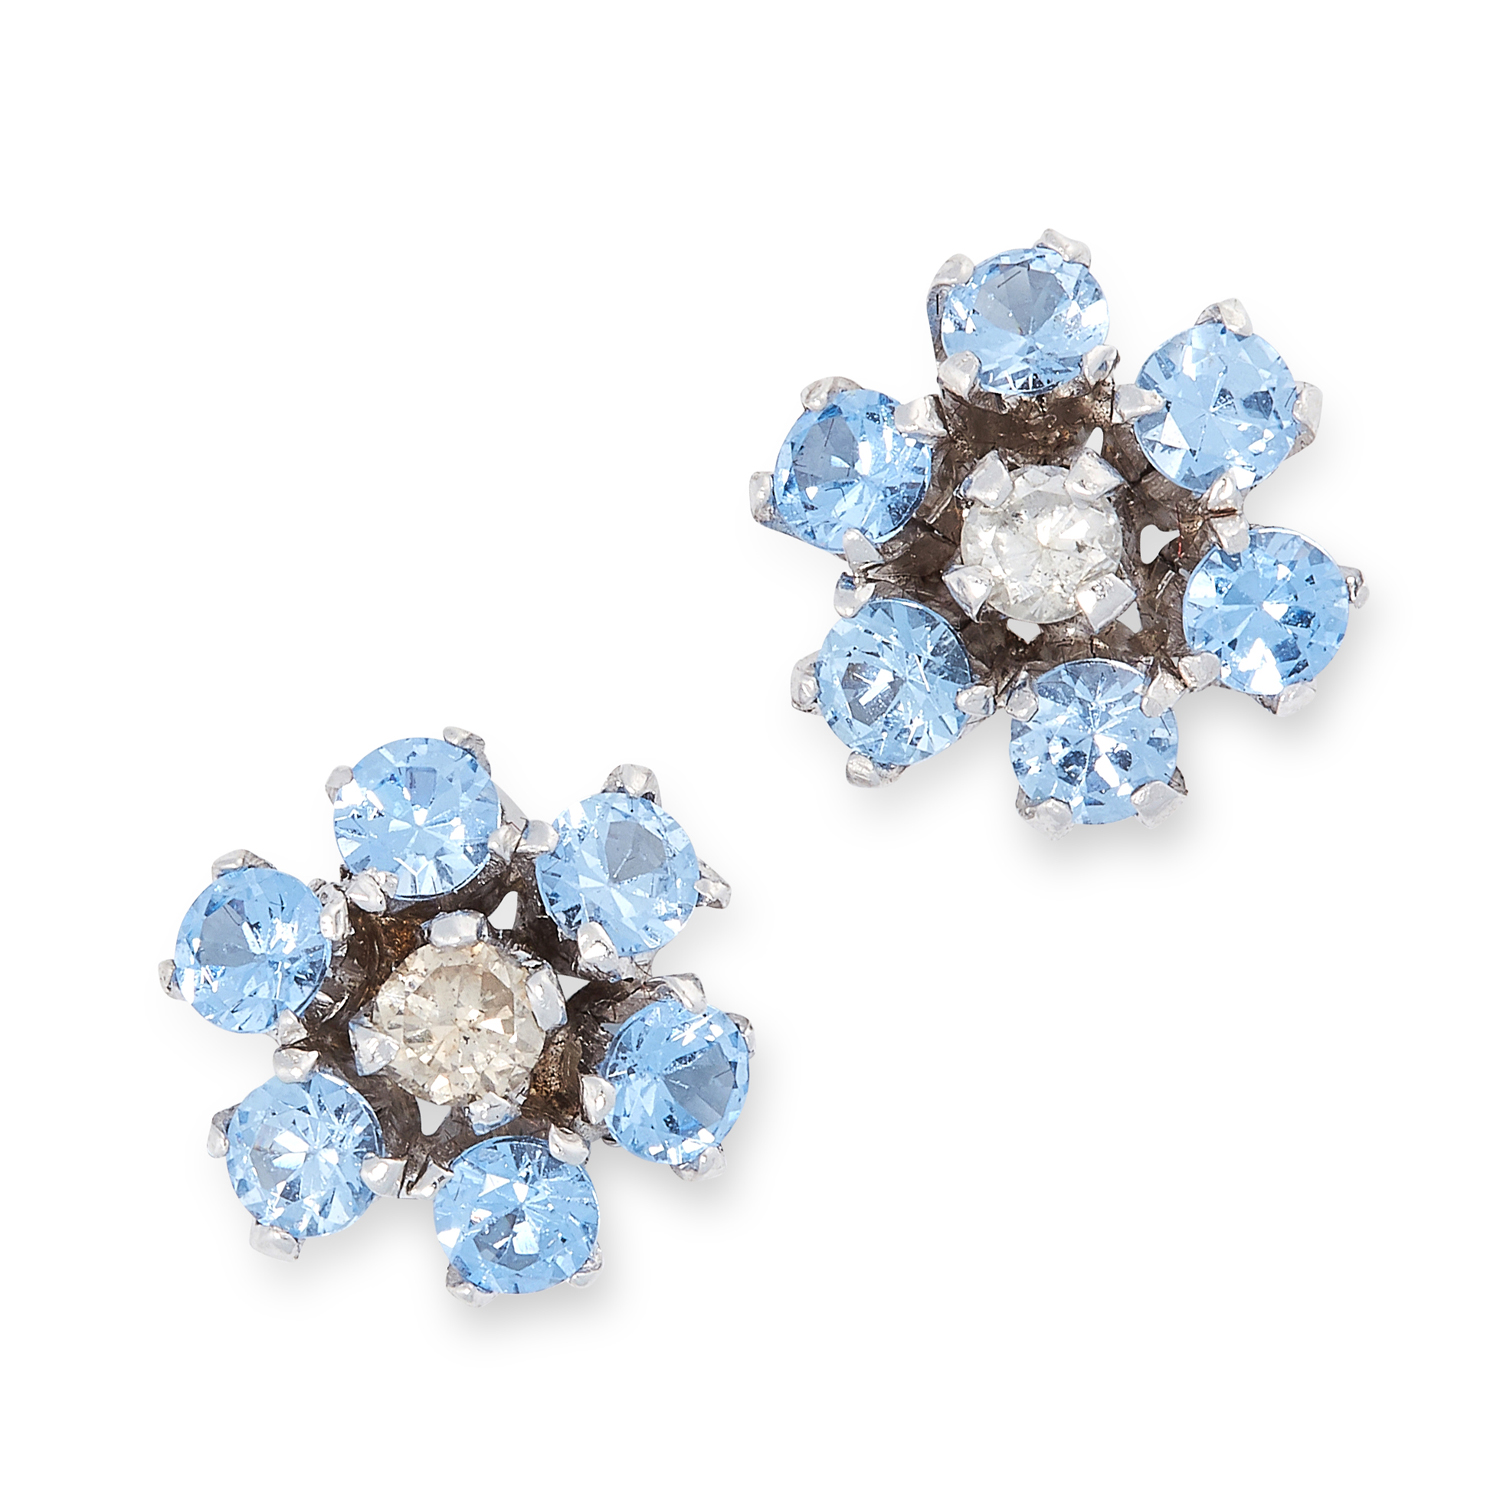 A PAIR OF BLUE TOPAZ AND DIAMOND CLUSTER STUD EARRINGS comprising of a round brilliant cut diamond